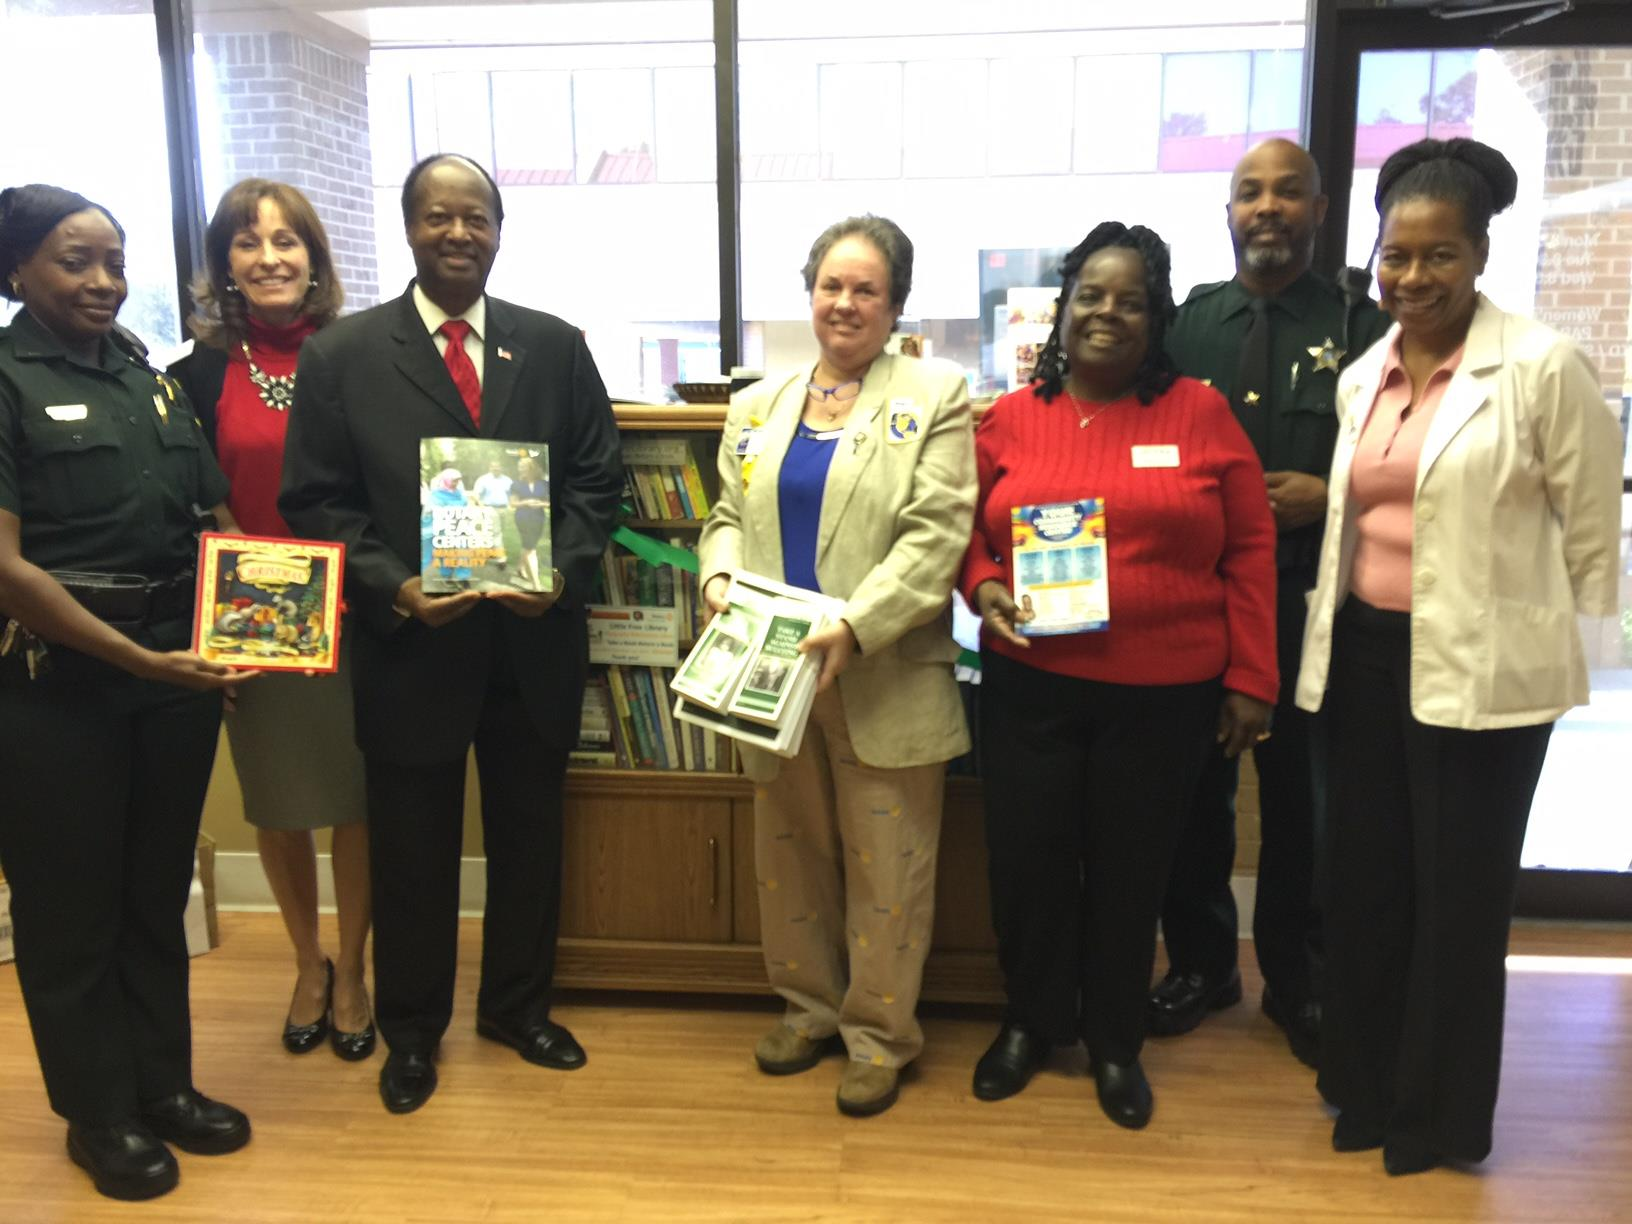 Lt Frost, Congressman Webster's rep Cindy Brown, Orl Comm Ings, DrO, Ansar of Charity & Love, ACorp Stanley Murray add to the Little Free Library.